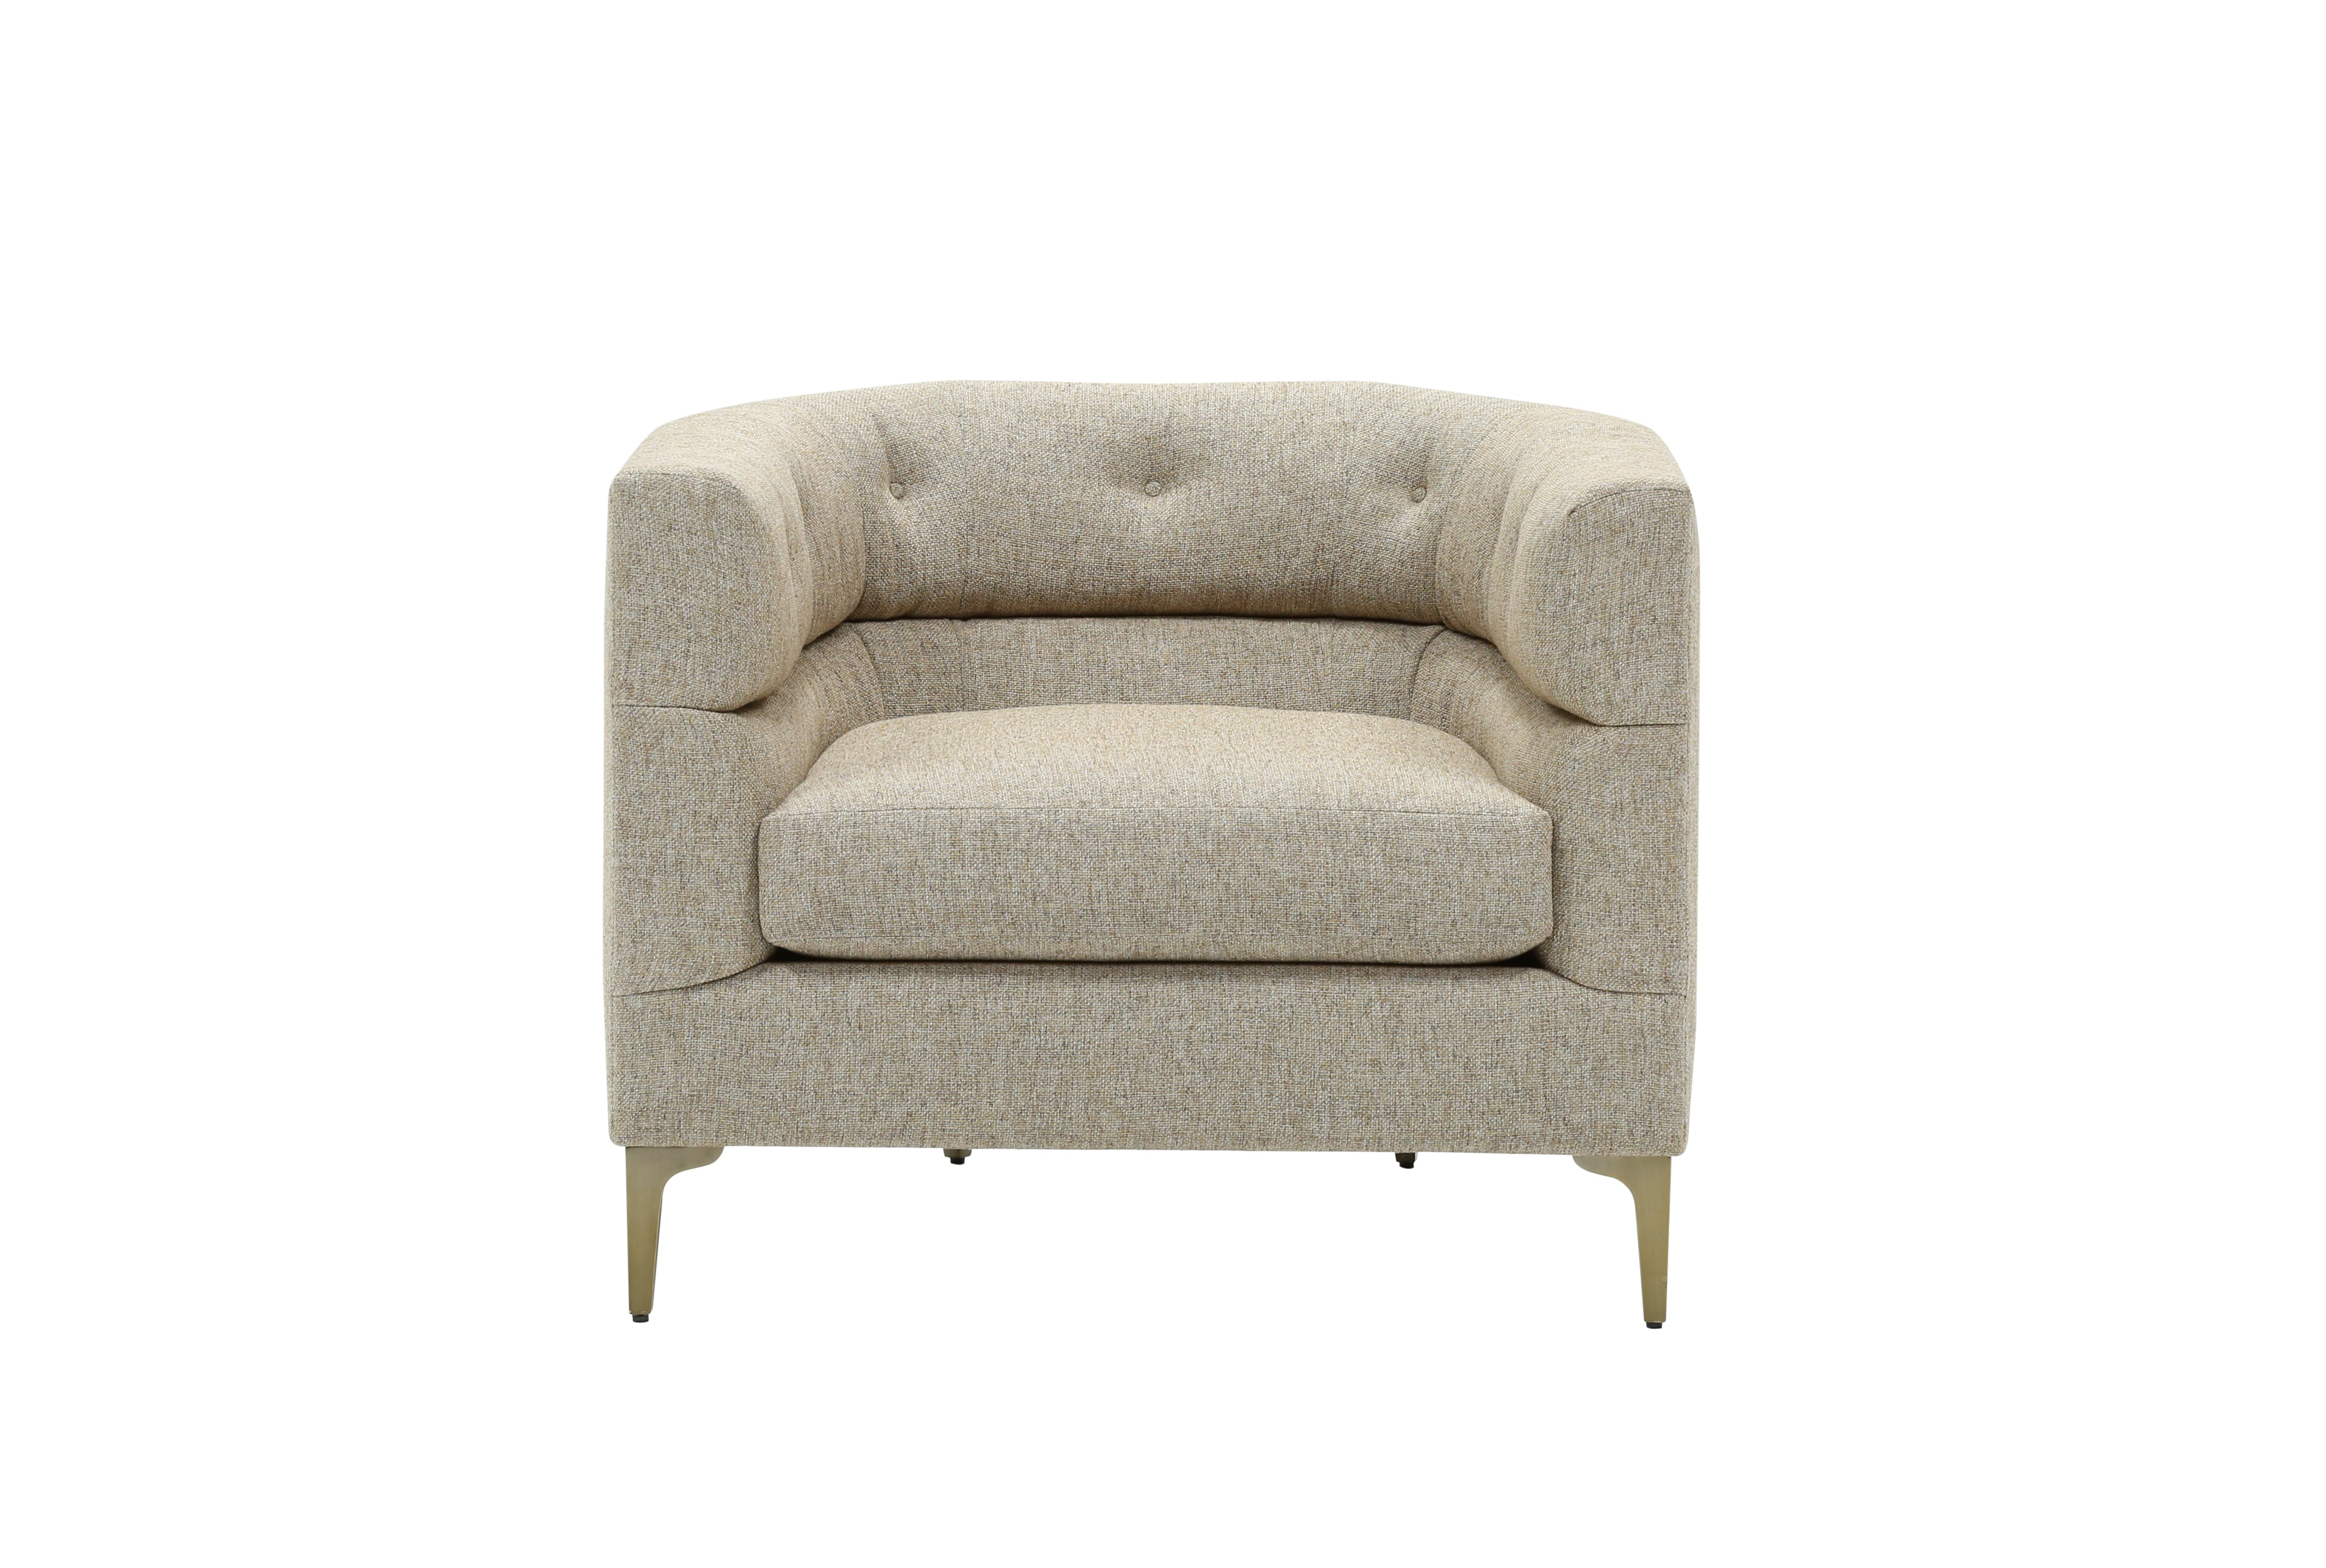 Nate Berkus Just Launched A Home Collection With Hubby Jeremiah inside Matteo Arm Sofa Chairs By Nate Berkus And Jeremiah Brent